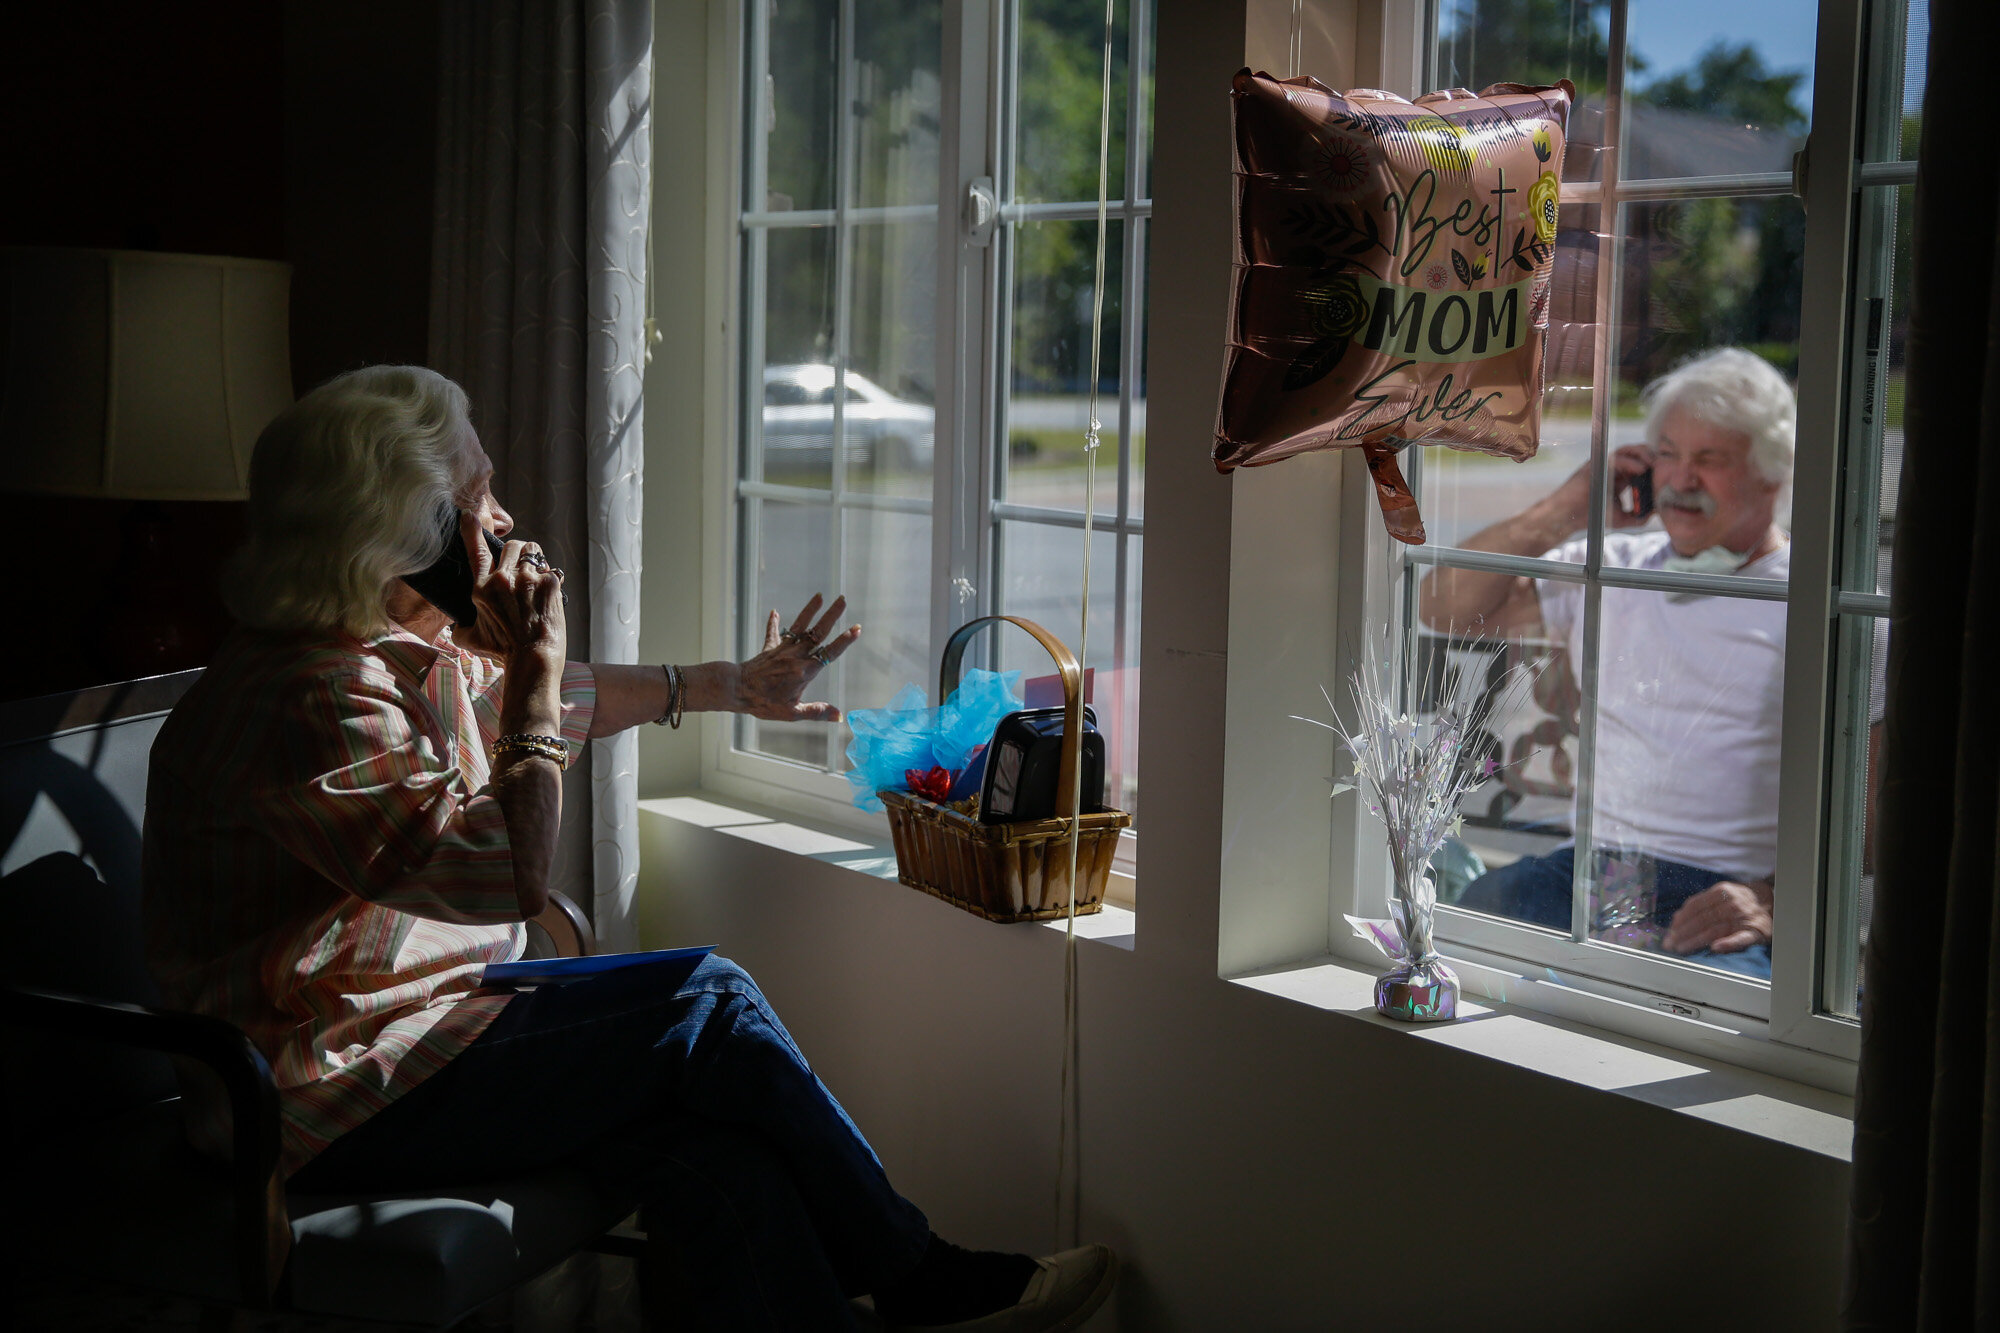 """Mary Faye Cochran, 86, sings """"You Are My Sunshine"""" over the phone to her son Stacey Smith through a window on Mother's Day, Sunday, May 10, 2020, at Provident Village at Creekside senior living in Smyrna, Ga. (AP Photo/Brynn Anderson)"""